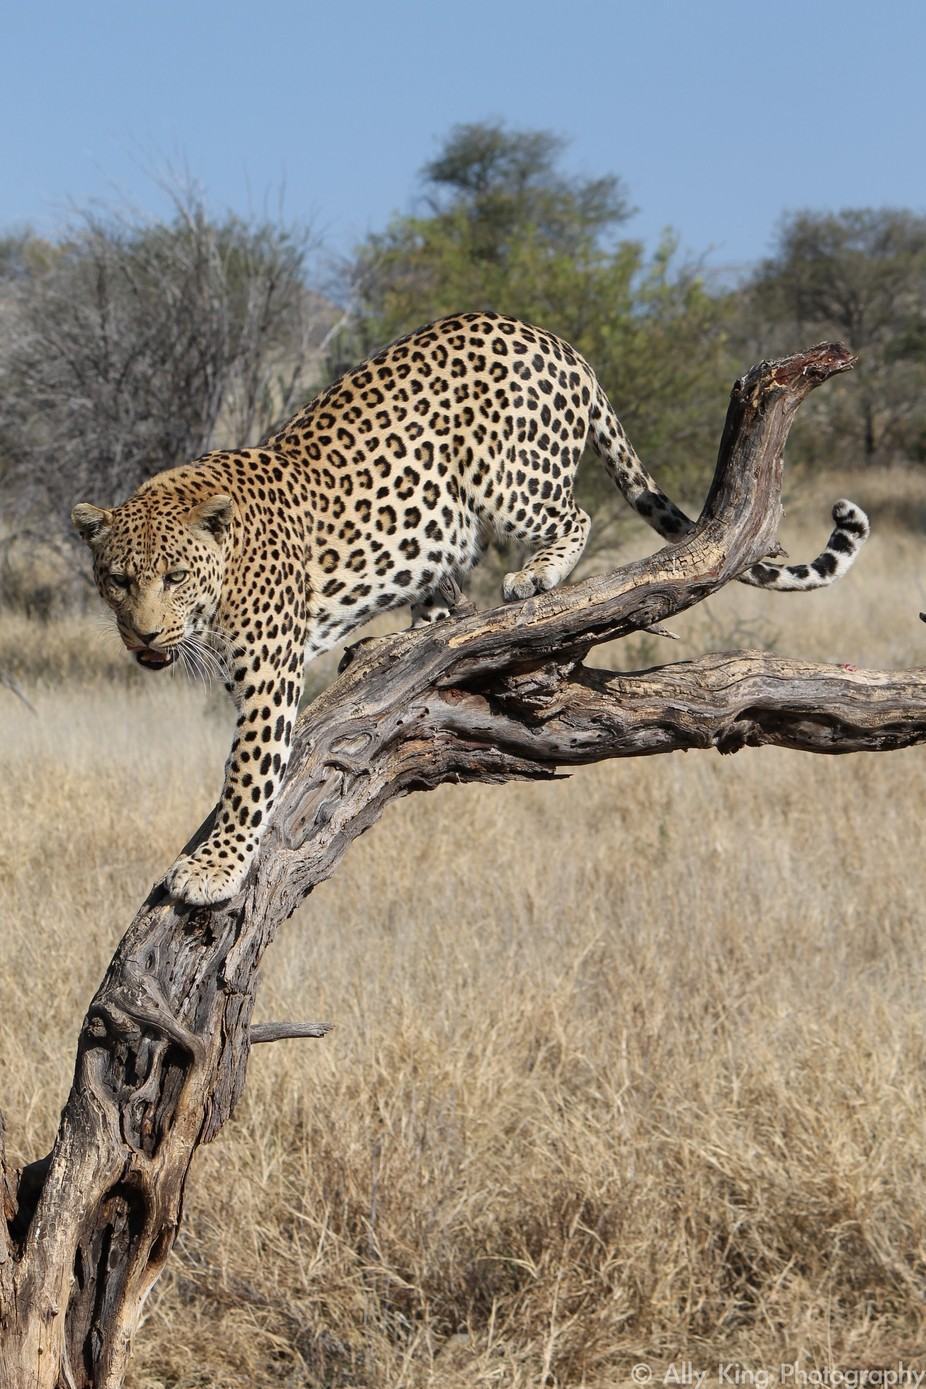 Leopard in Tree by allyking - Wildlife Photo Contest 2017